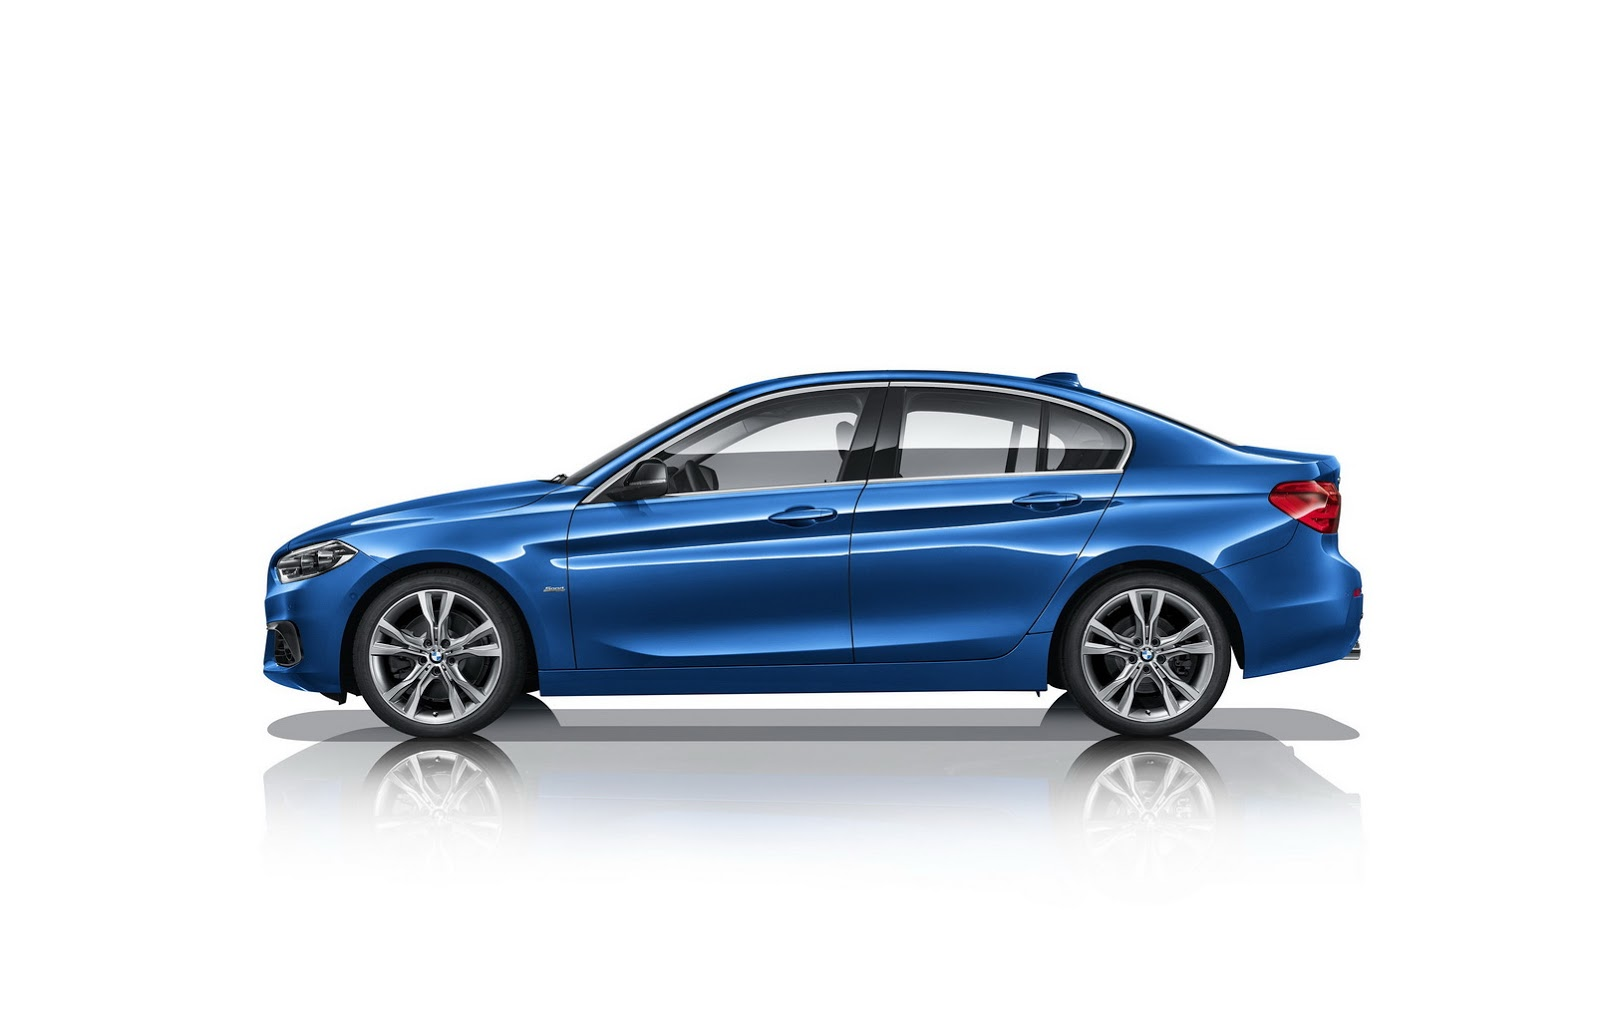 , bmw-1series-sedan-detailed-4: bmw-1series-sedan-detailed-4